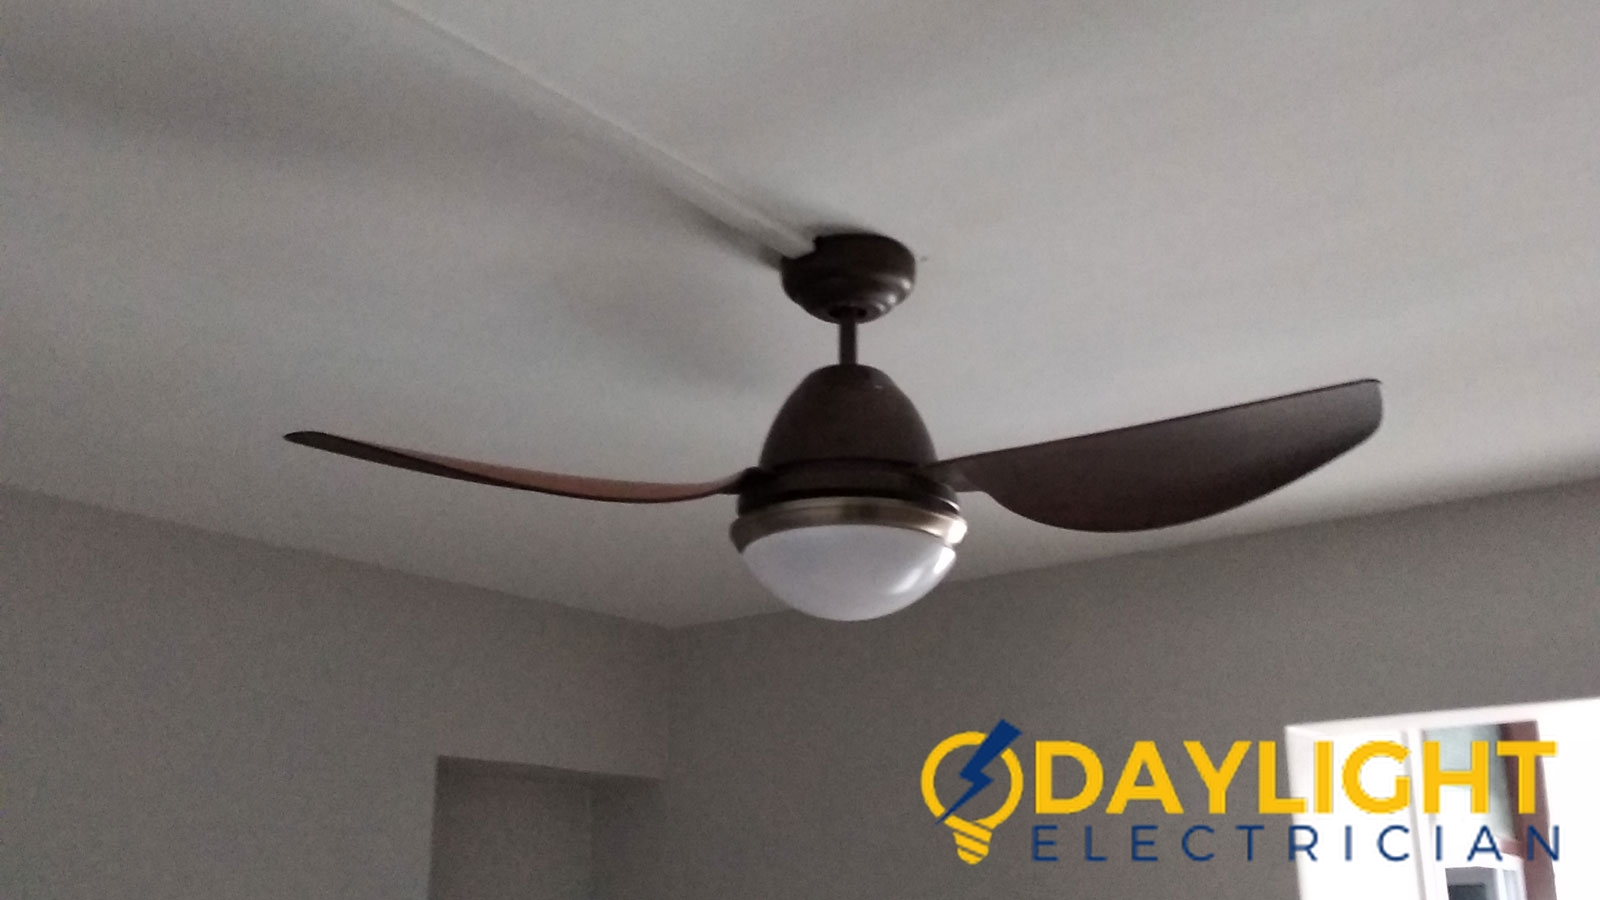 ceiling fan installation service daylight electrician singapore Condo bukit timah